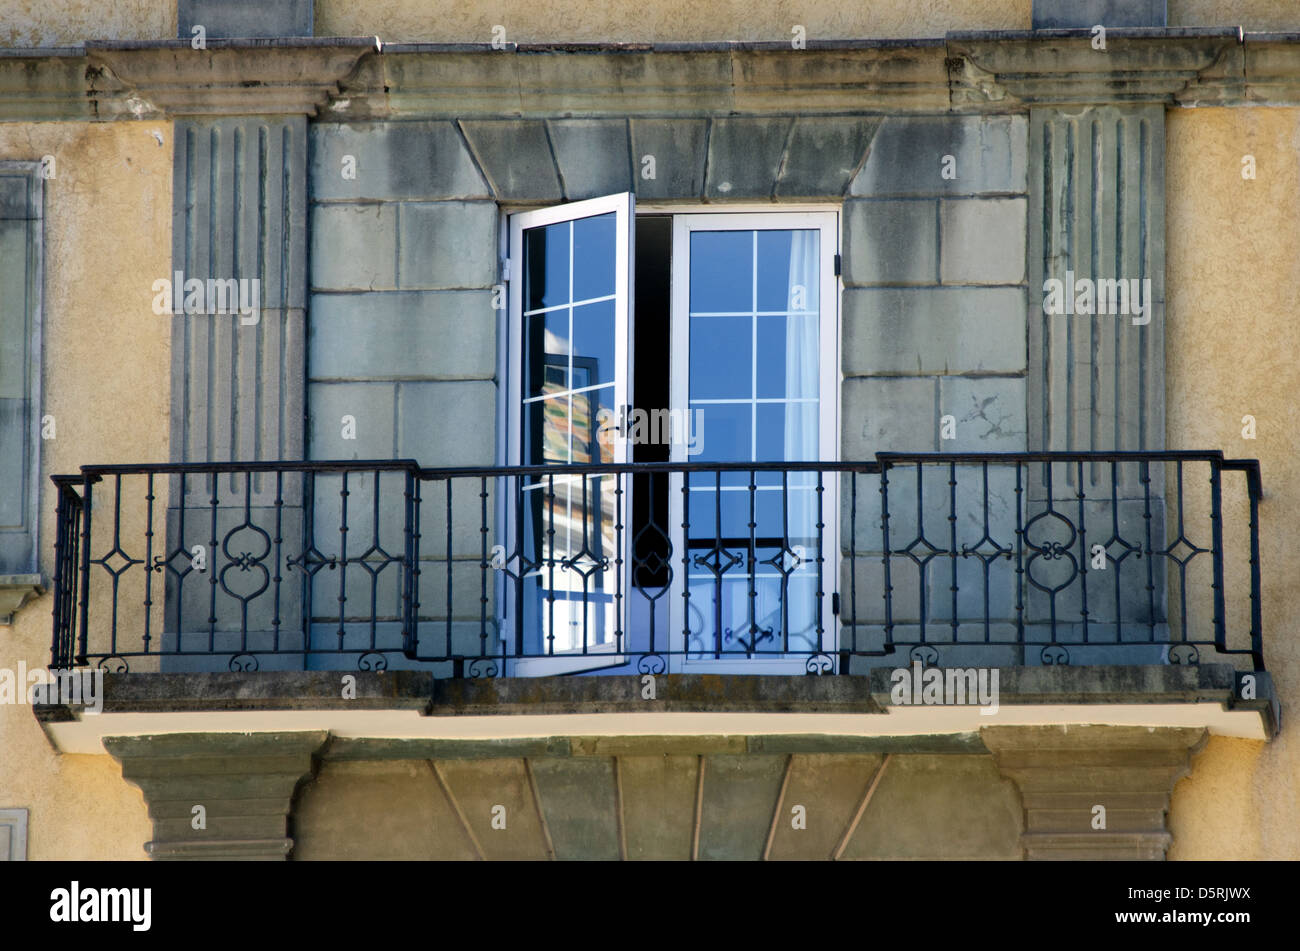 French doors open onto a wrought iron balcony overlooking the Zocalo Oaxaca Mexico. & French doors open onto a wrought iron balcony overlooking the Zocalo ...